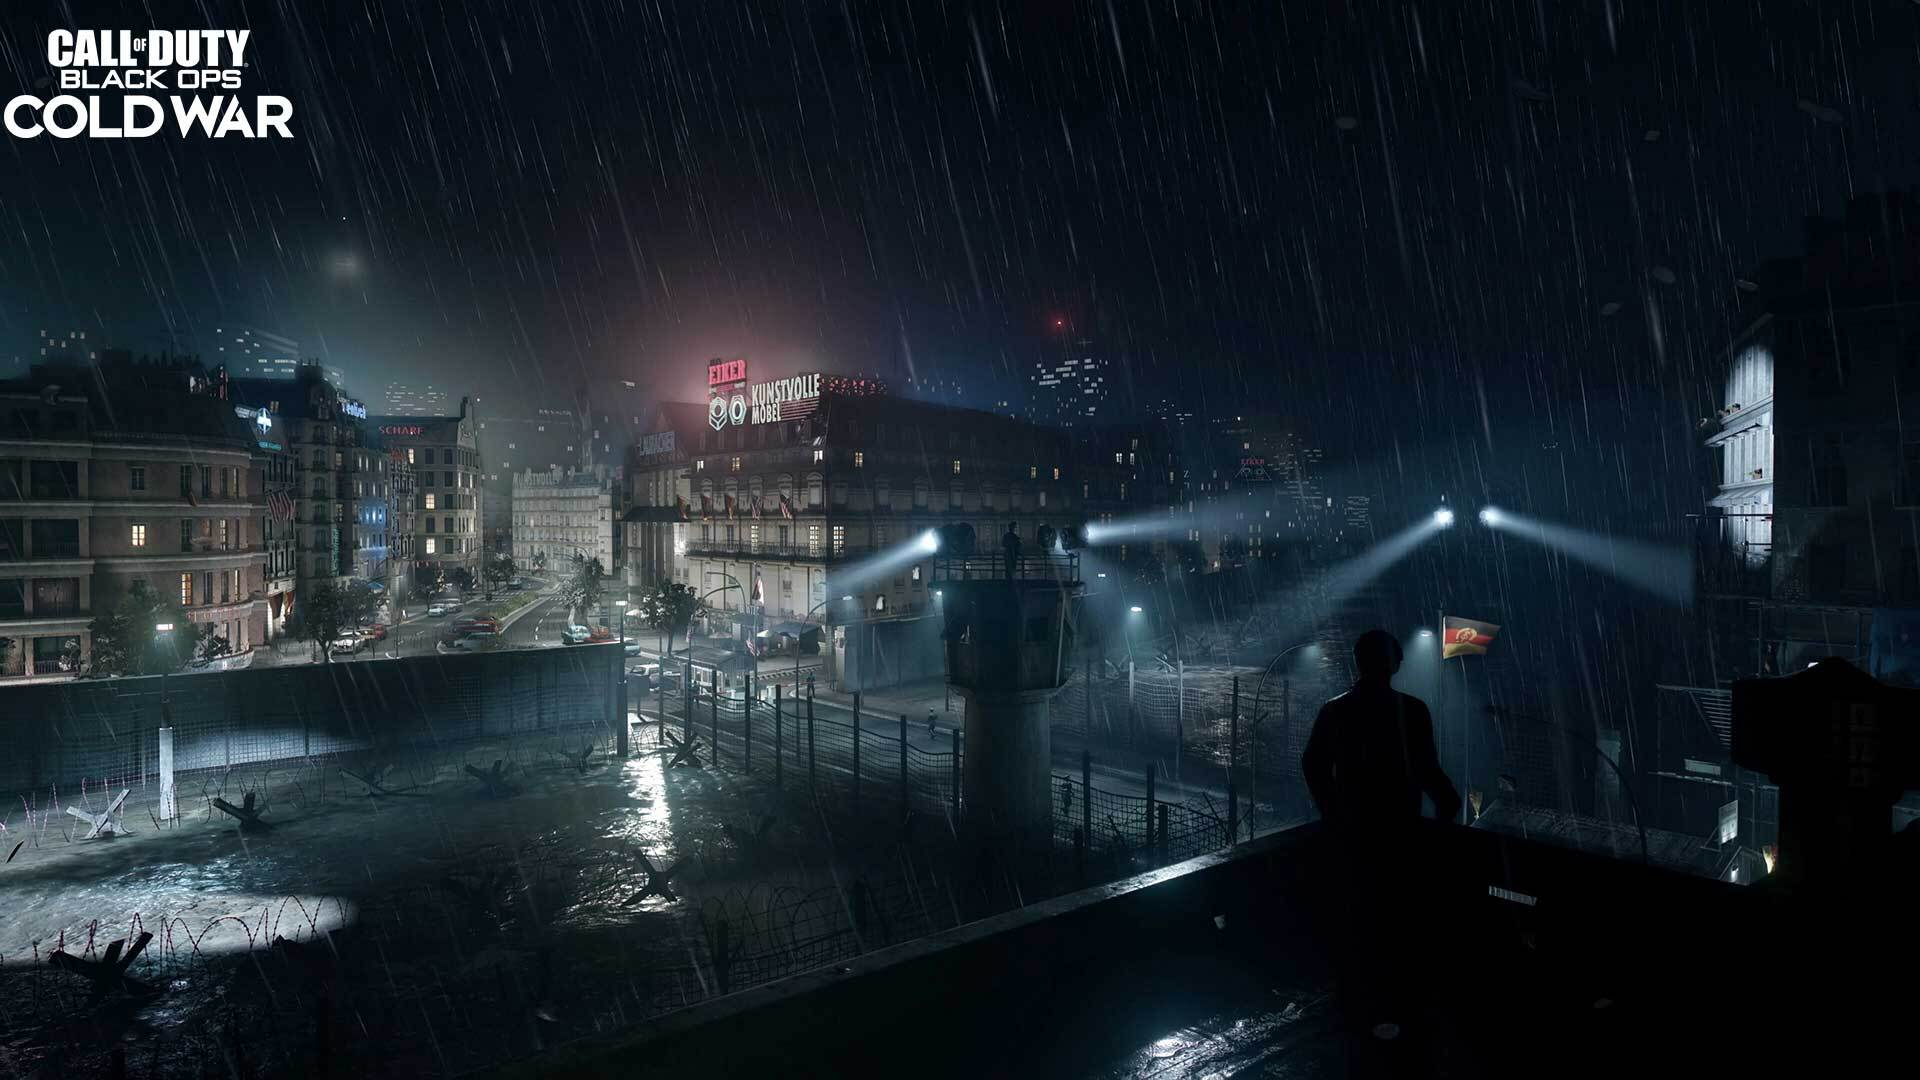 A Deep Dive Into The Call of Duty: Black Ops Cold War Campaign